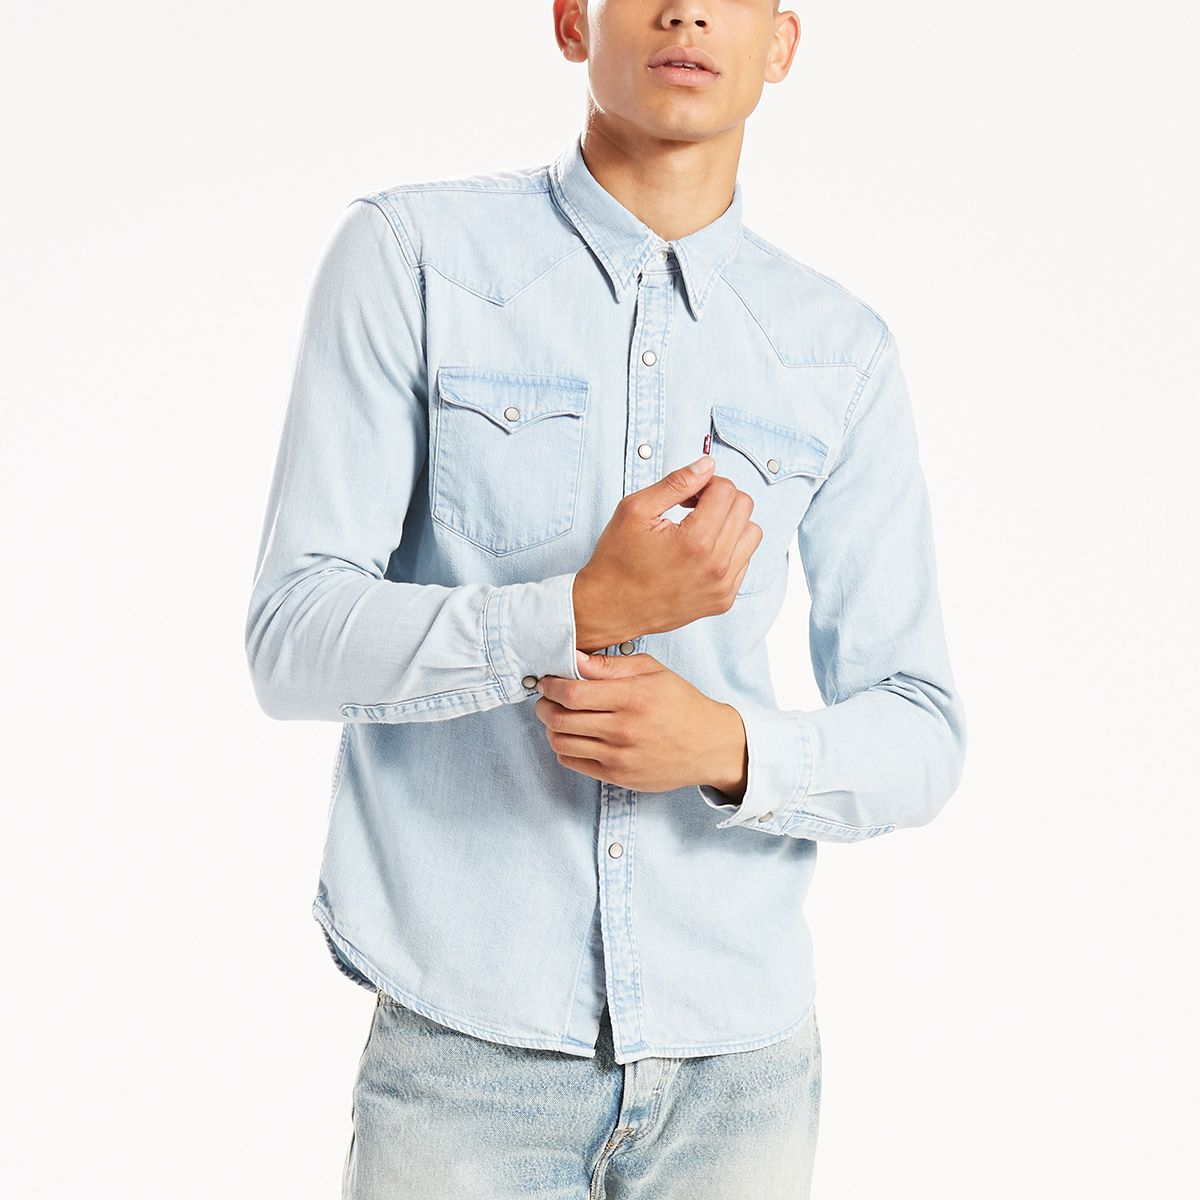 65a85daafd Buy Levis Denim Shirt Online - DREAMWORKS